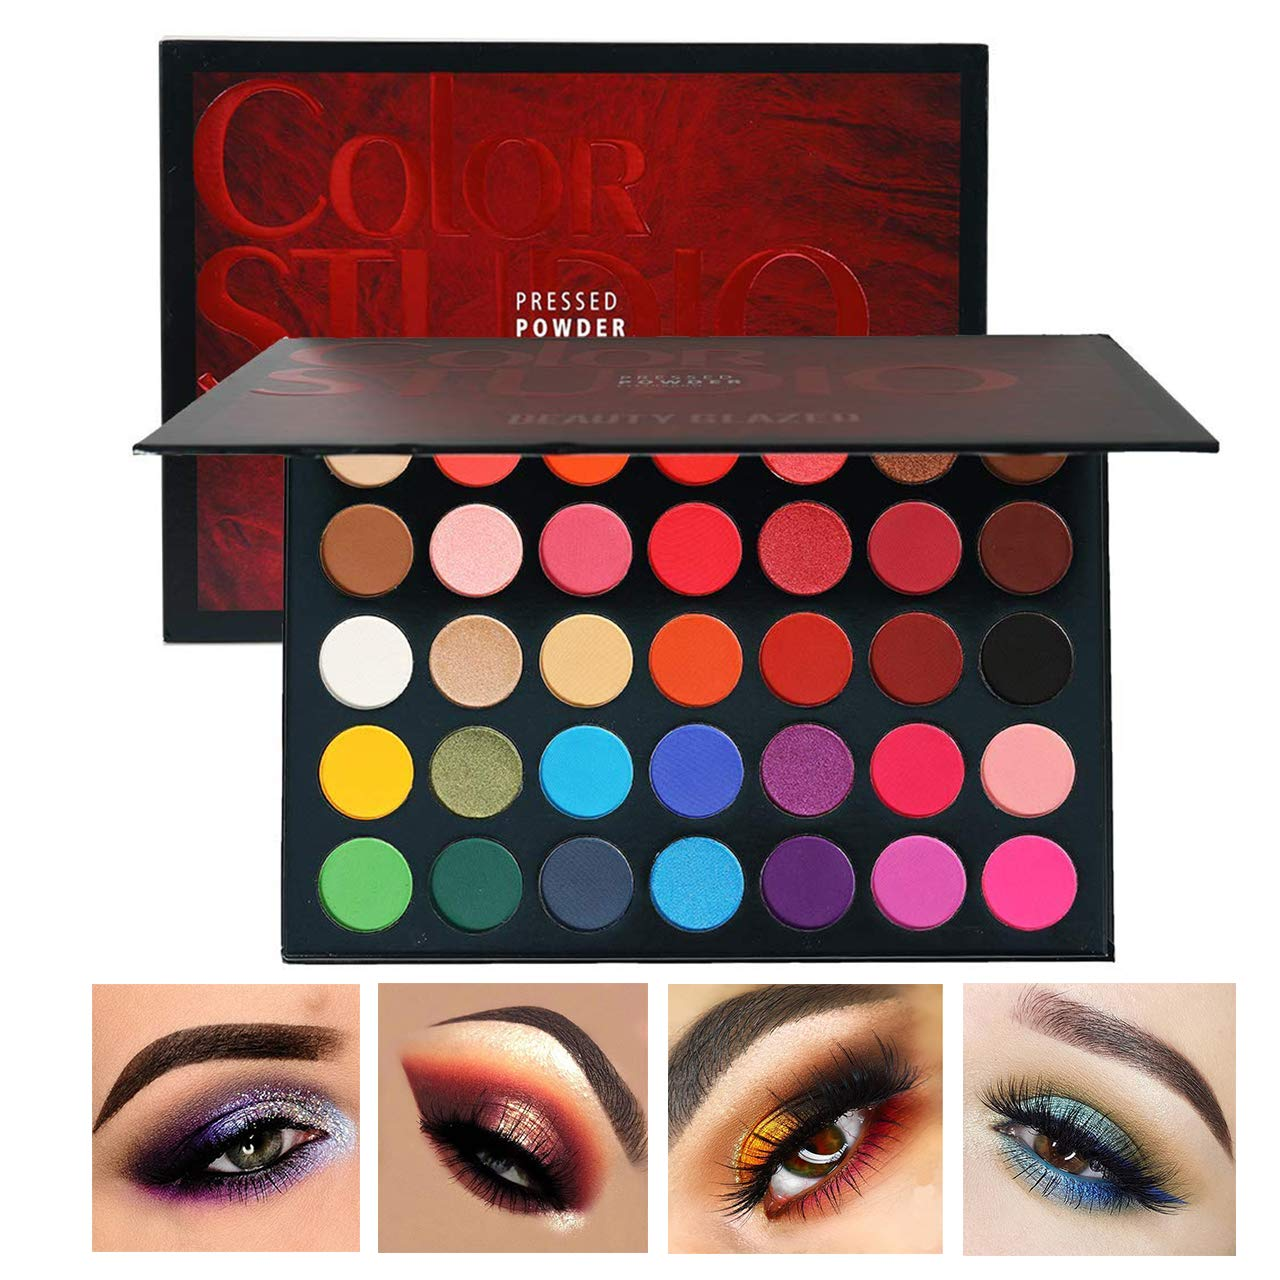 Beauty Glazed Sweatproof Matte and Shimmer Eyeshadow Make up Palettes Highly Pigmented 35 Colors Professional and Home Make up Big Palette Blendable Pressed Powder Eye shadow